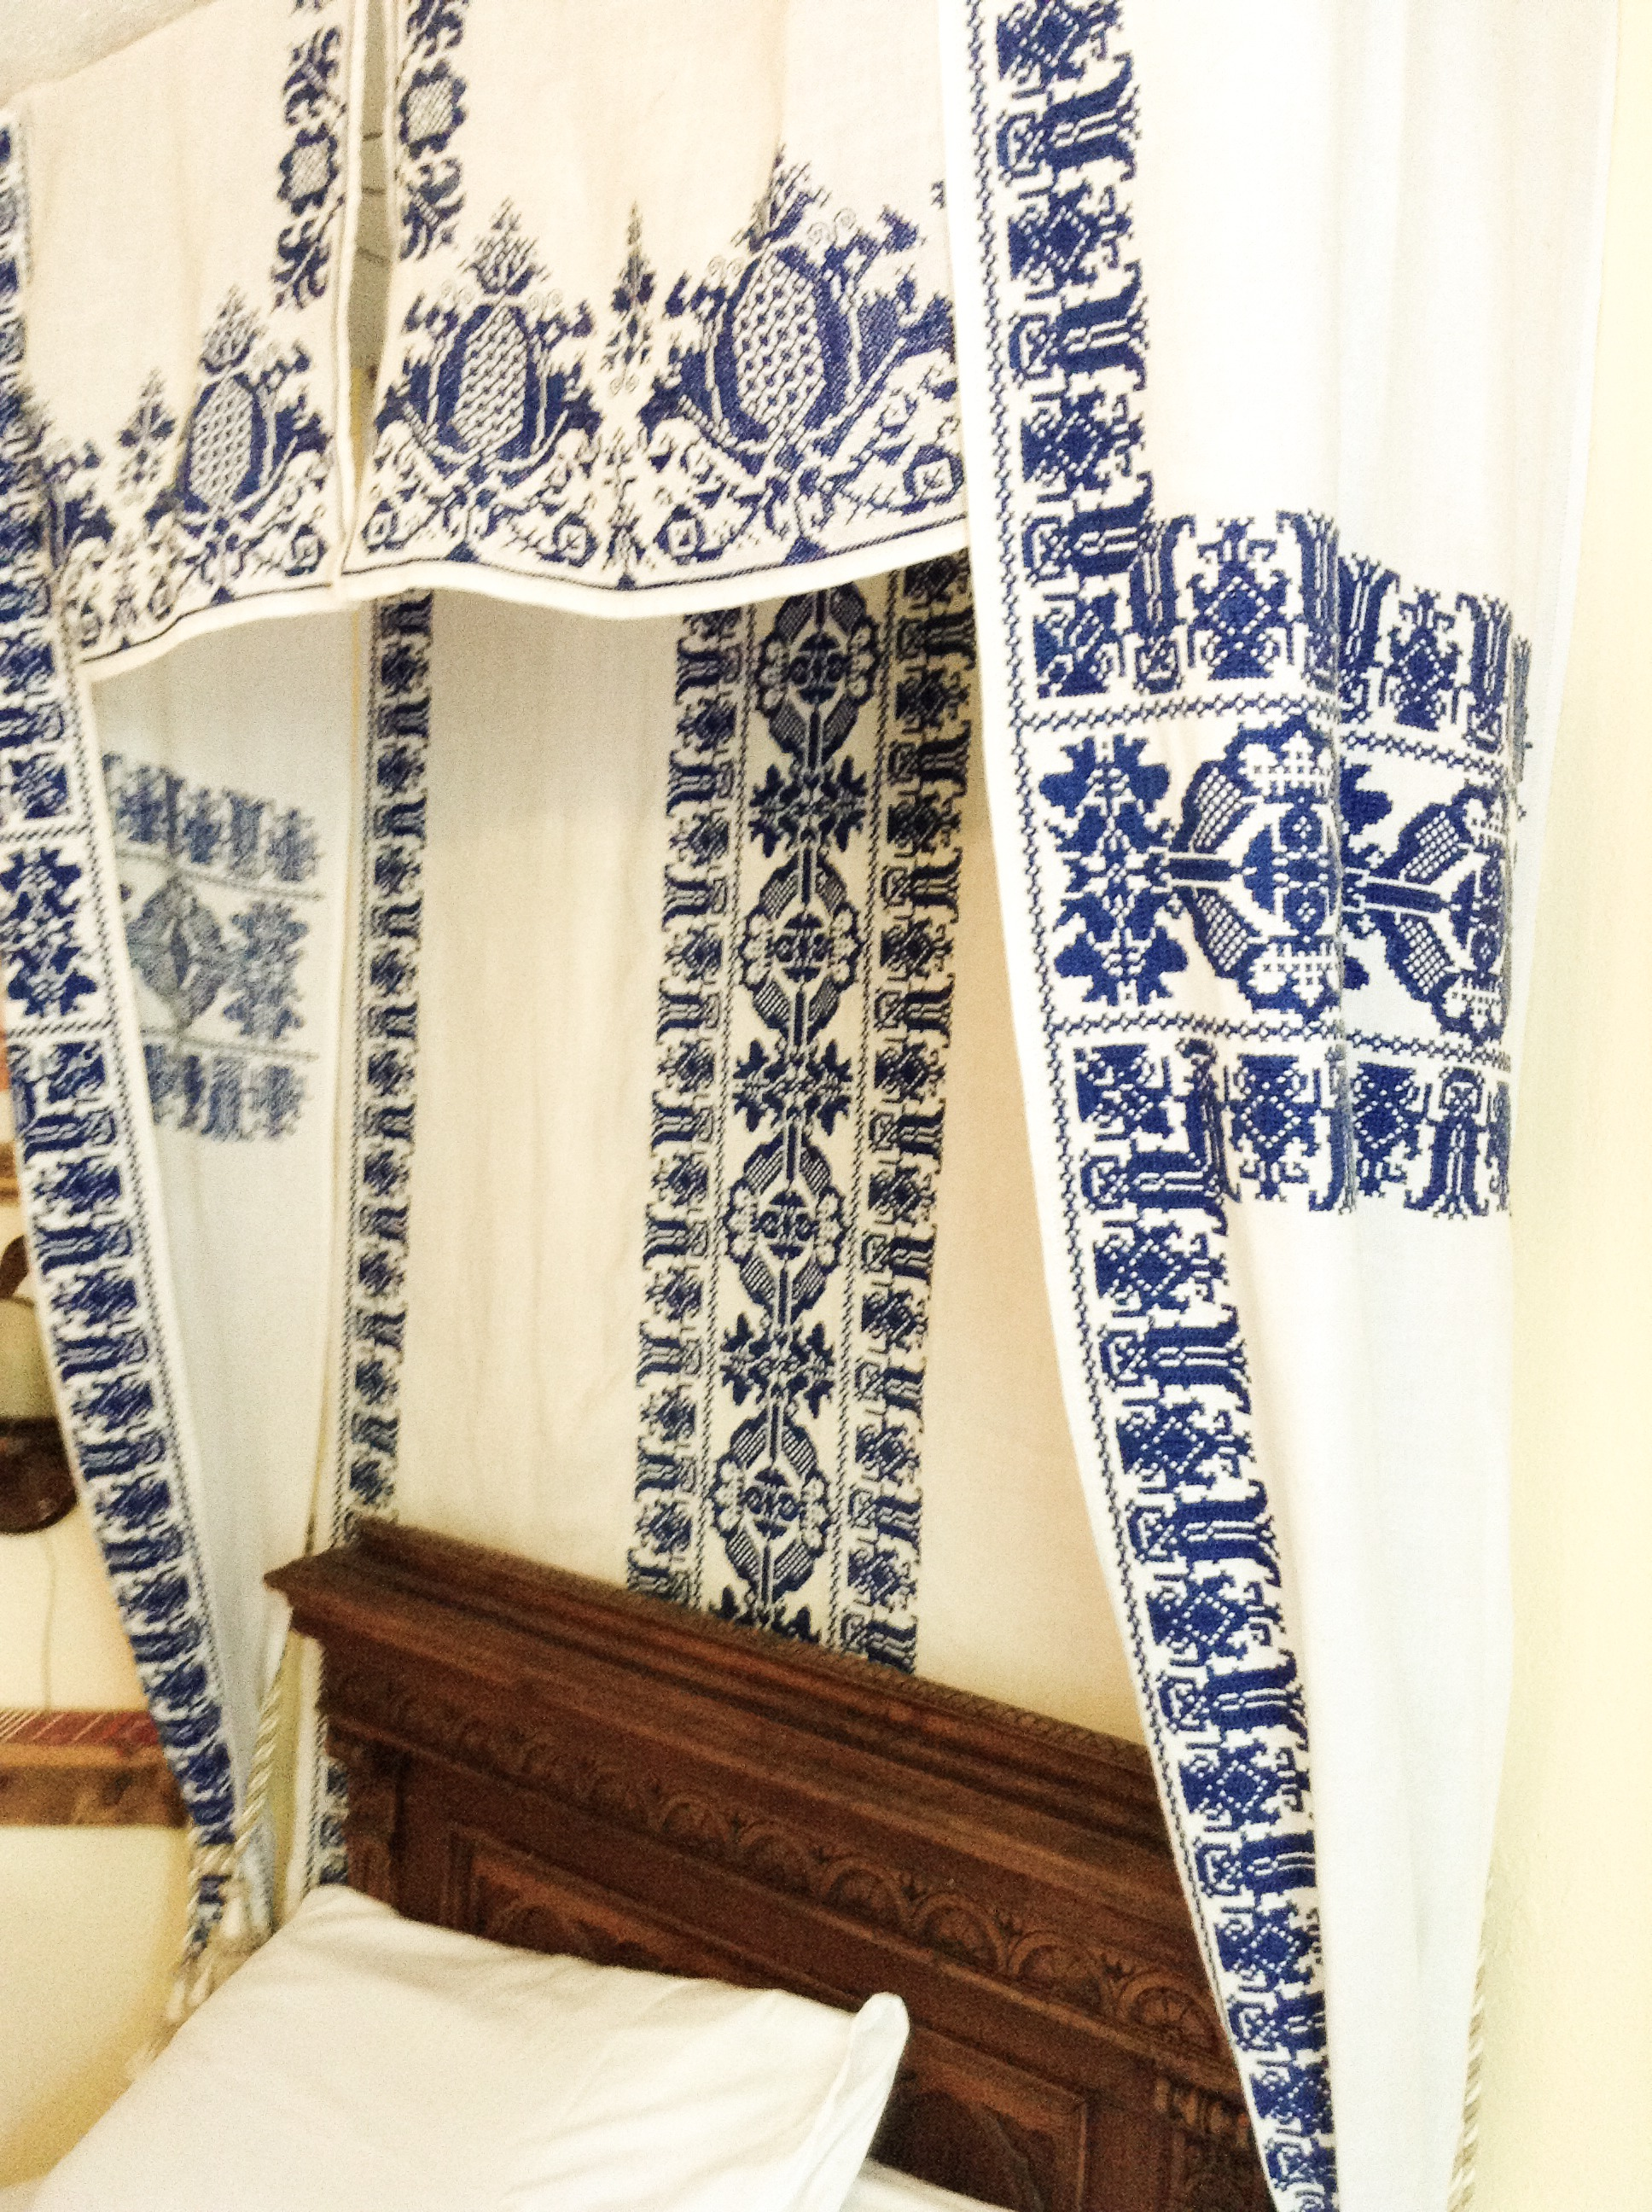 Unique Embroidery onBeautiful Hand Embroidered Bed Valence